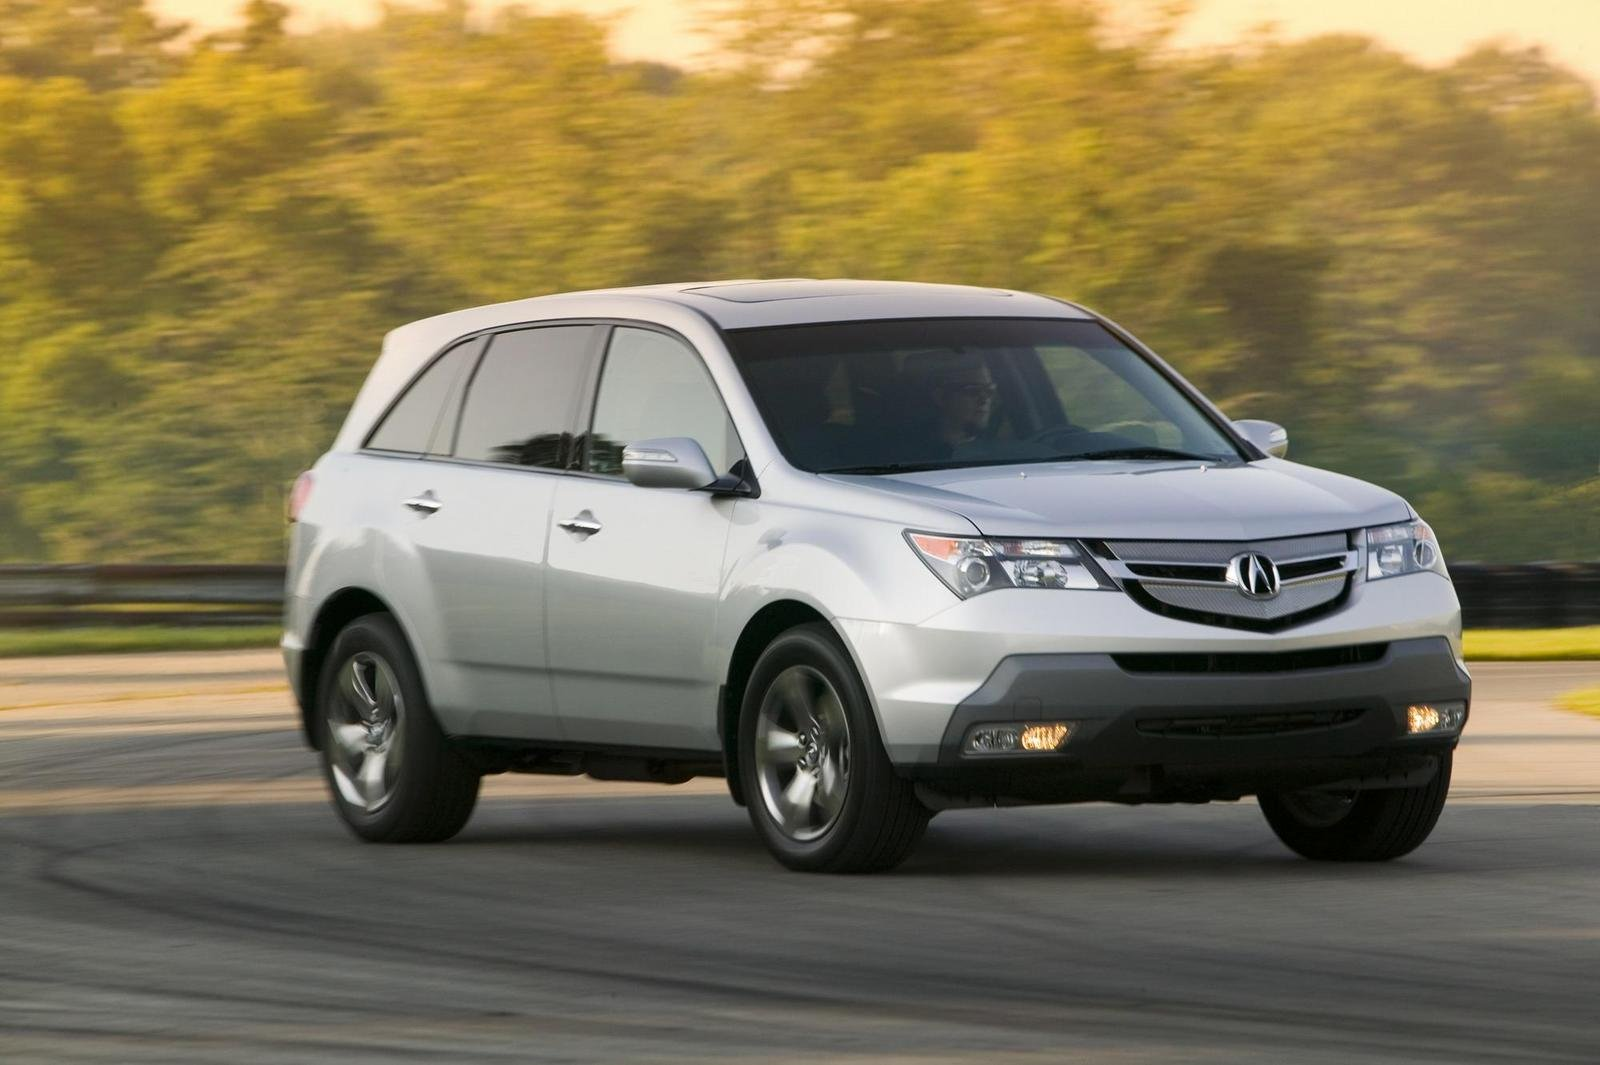 2009 acura mdx picture 299823 car review top speed. Black Bedroom Furniture Sets. Home Design Ideas